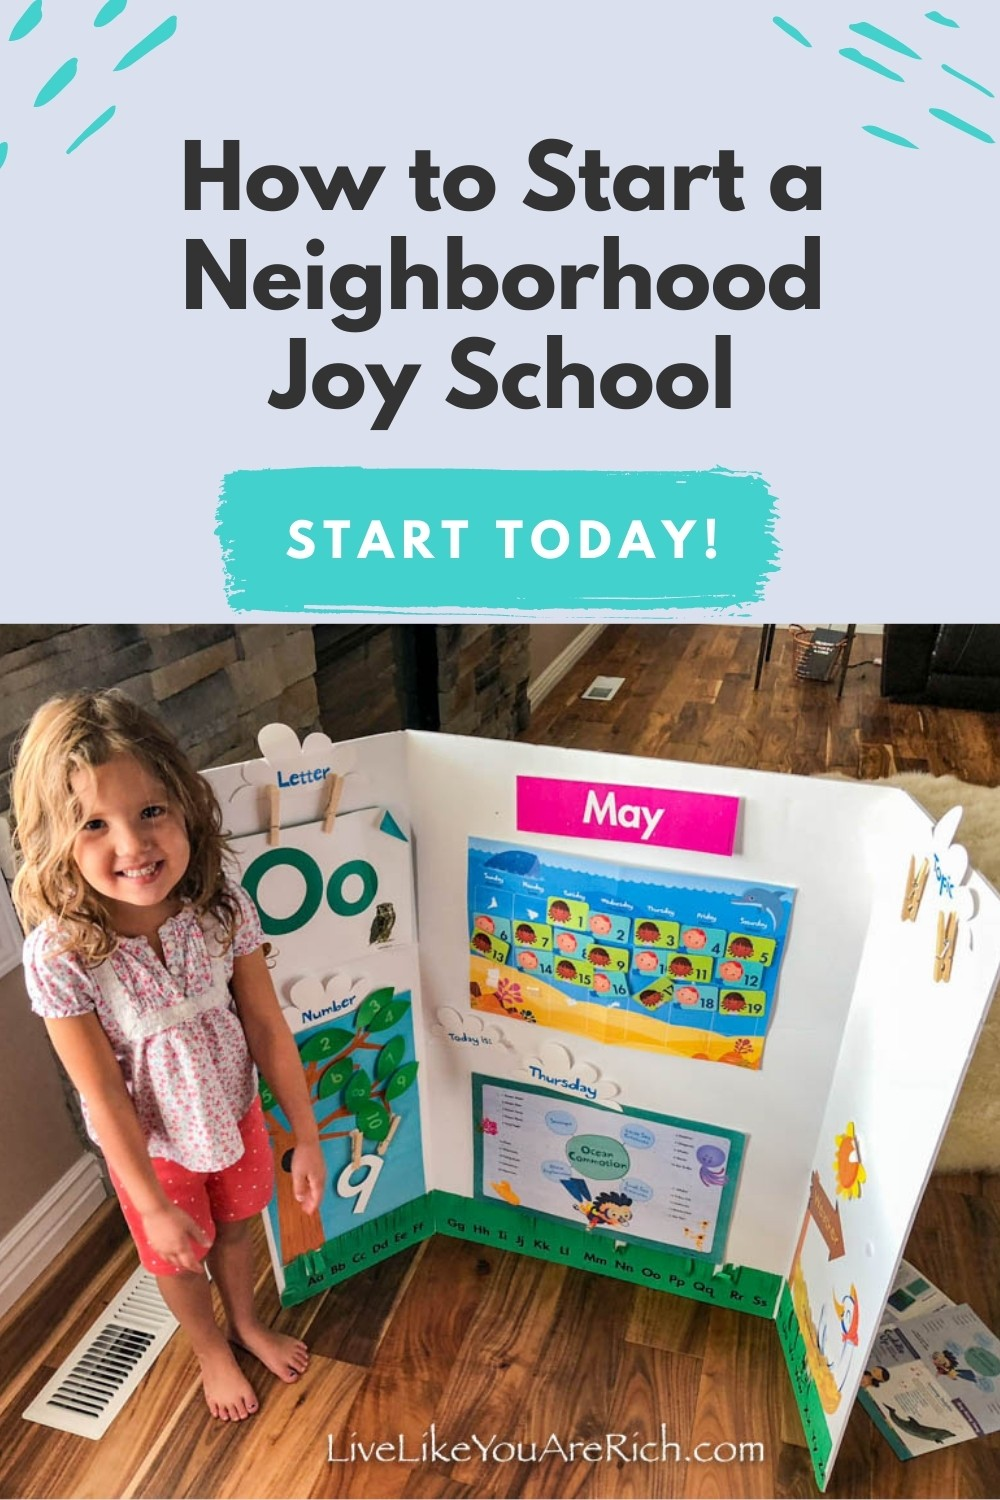 Joy school is also known as a co-op preschool; it is taught and ran by the mothers of the children. Participating in a neighborhood joy school was such a positive experience! I'd highly recommend participating in one if you can! I'm sharing these 13 steps to help you know how to start a neighborhood joy school!